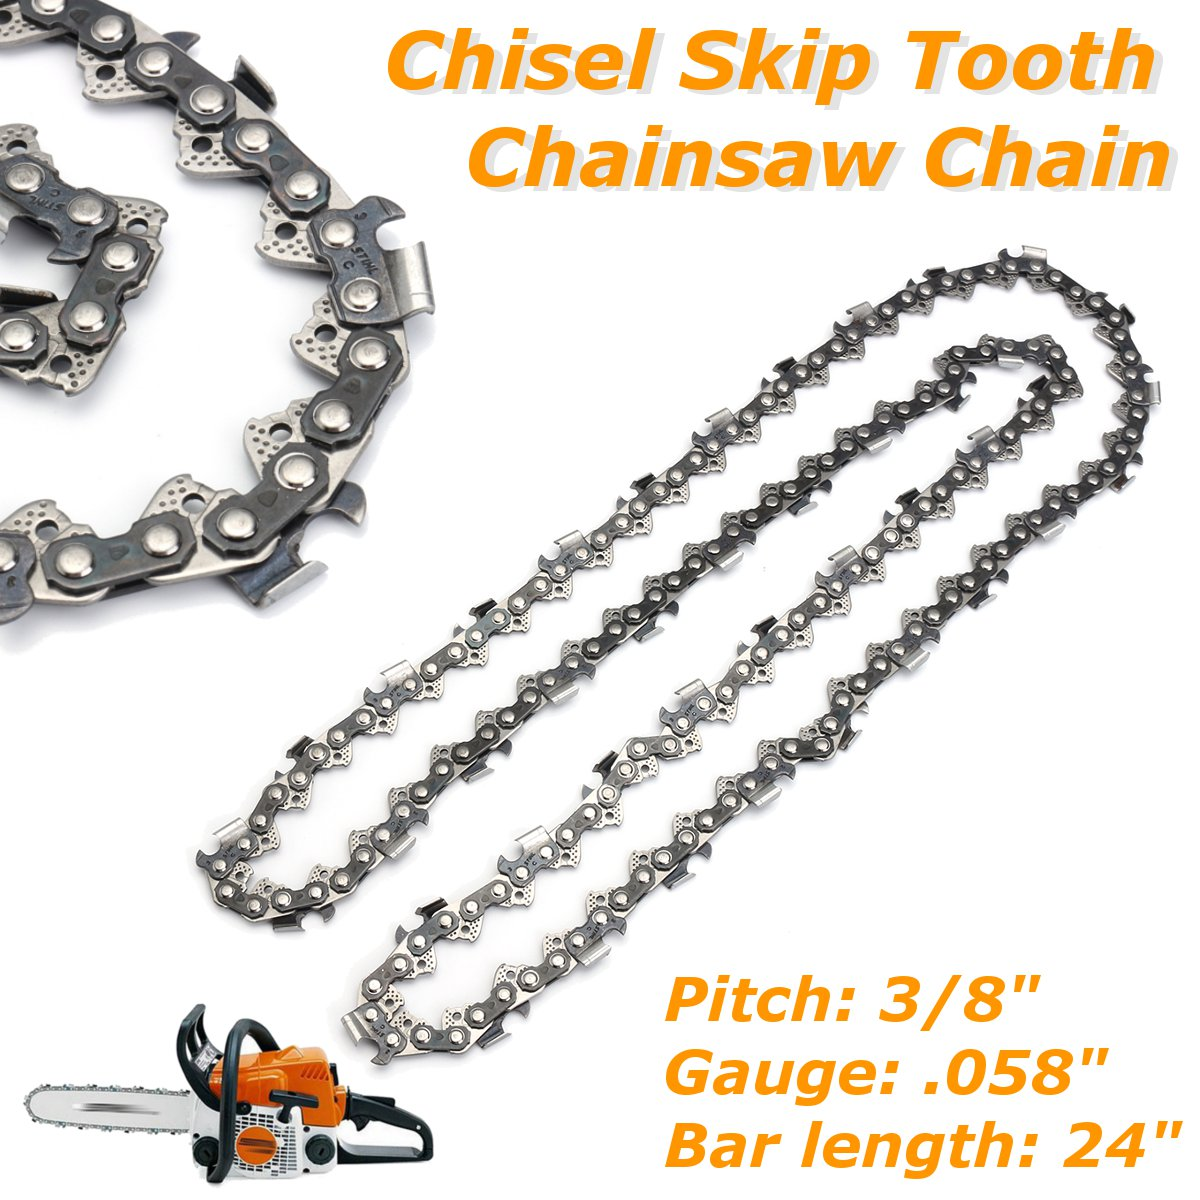 1pc 24 Inch Semi Chain Saw Chainsaw With File  For Husqvarna 24 Inch Bar 3/8 Inch 058 84DL Semi Chisel Skip Tooth